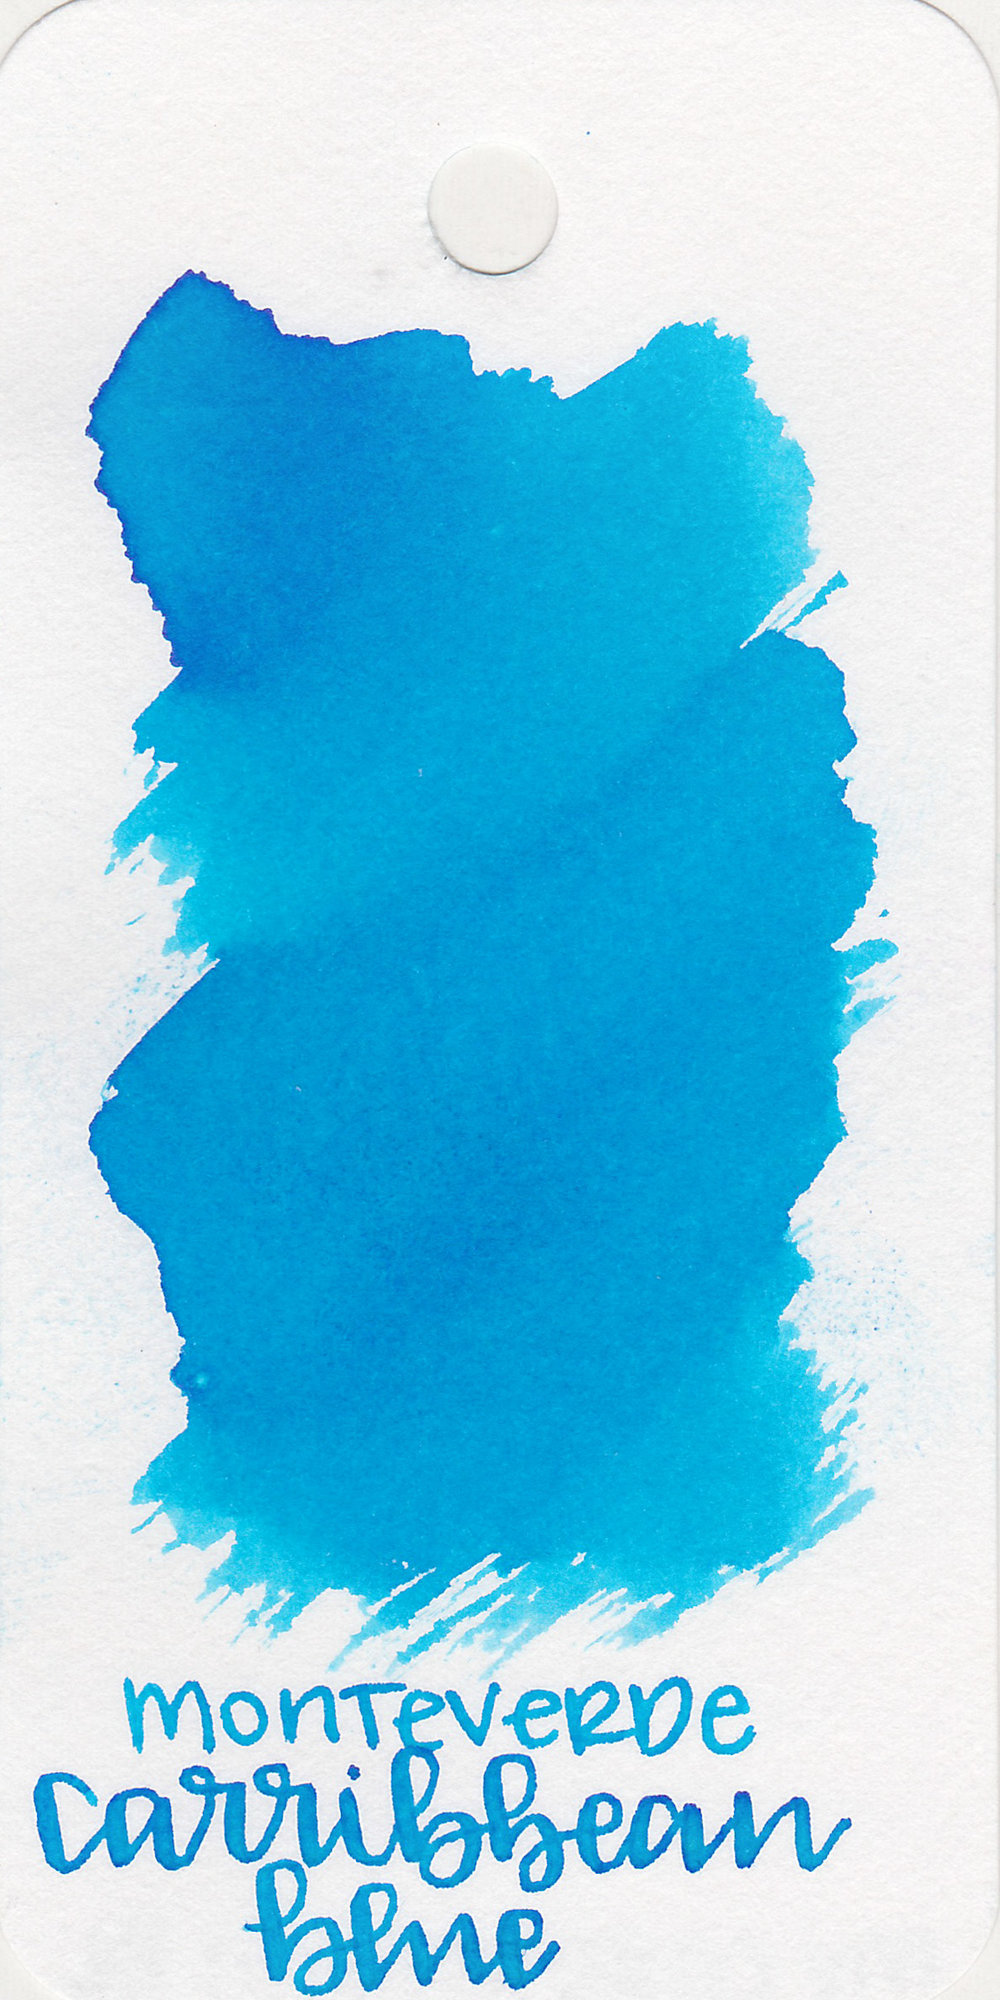 The color: - Caribbean Blue is a beautiful bright, light blue. I would call it a sky blue.